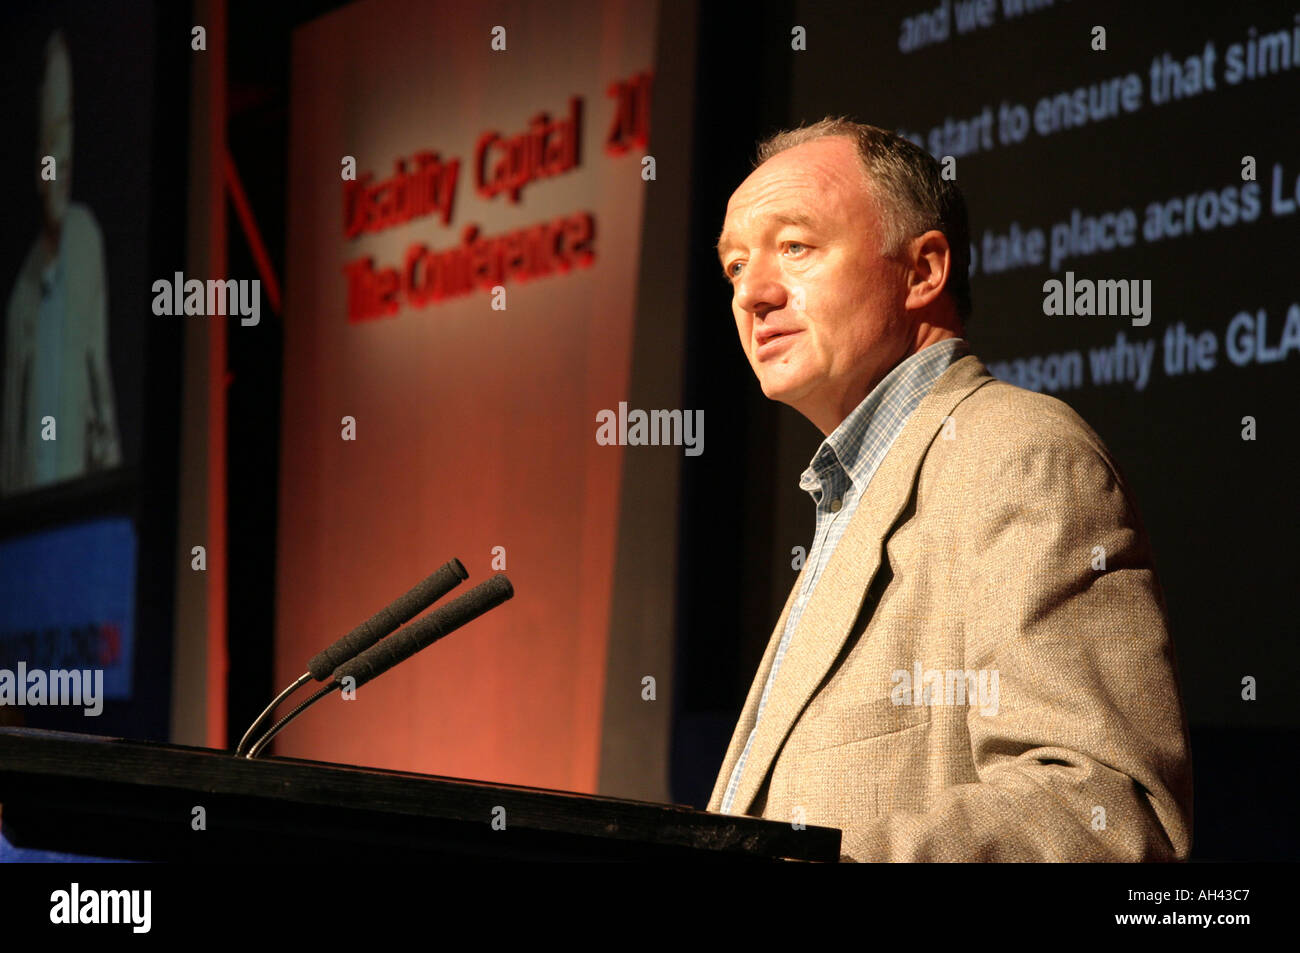 Ken Livingstone Mayor of London UK Speaking at a London Press Conference Dec 2004 - Stock Image